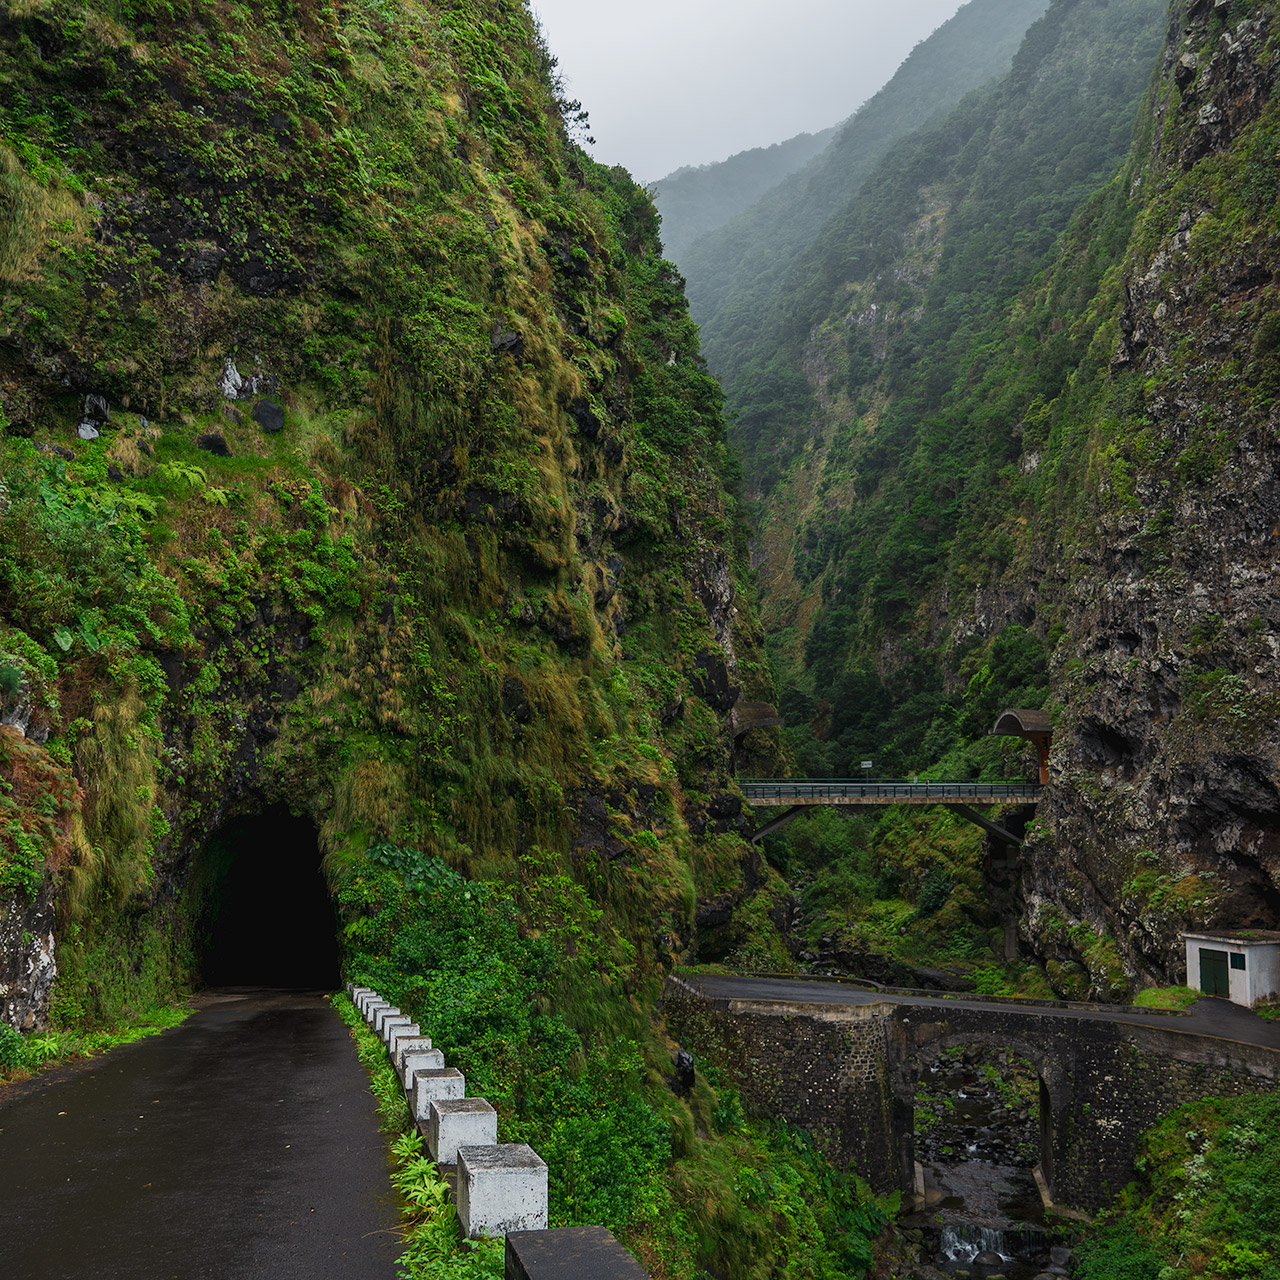 The old road and two-way tunnel on the North coast of Madeira. Some of the older roads are in a very bad state and closed, but this one was open for traffic.